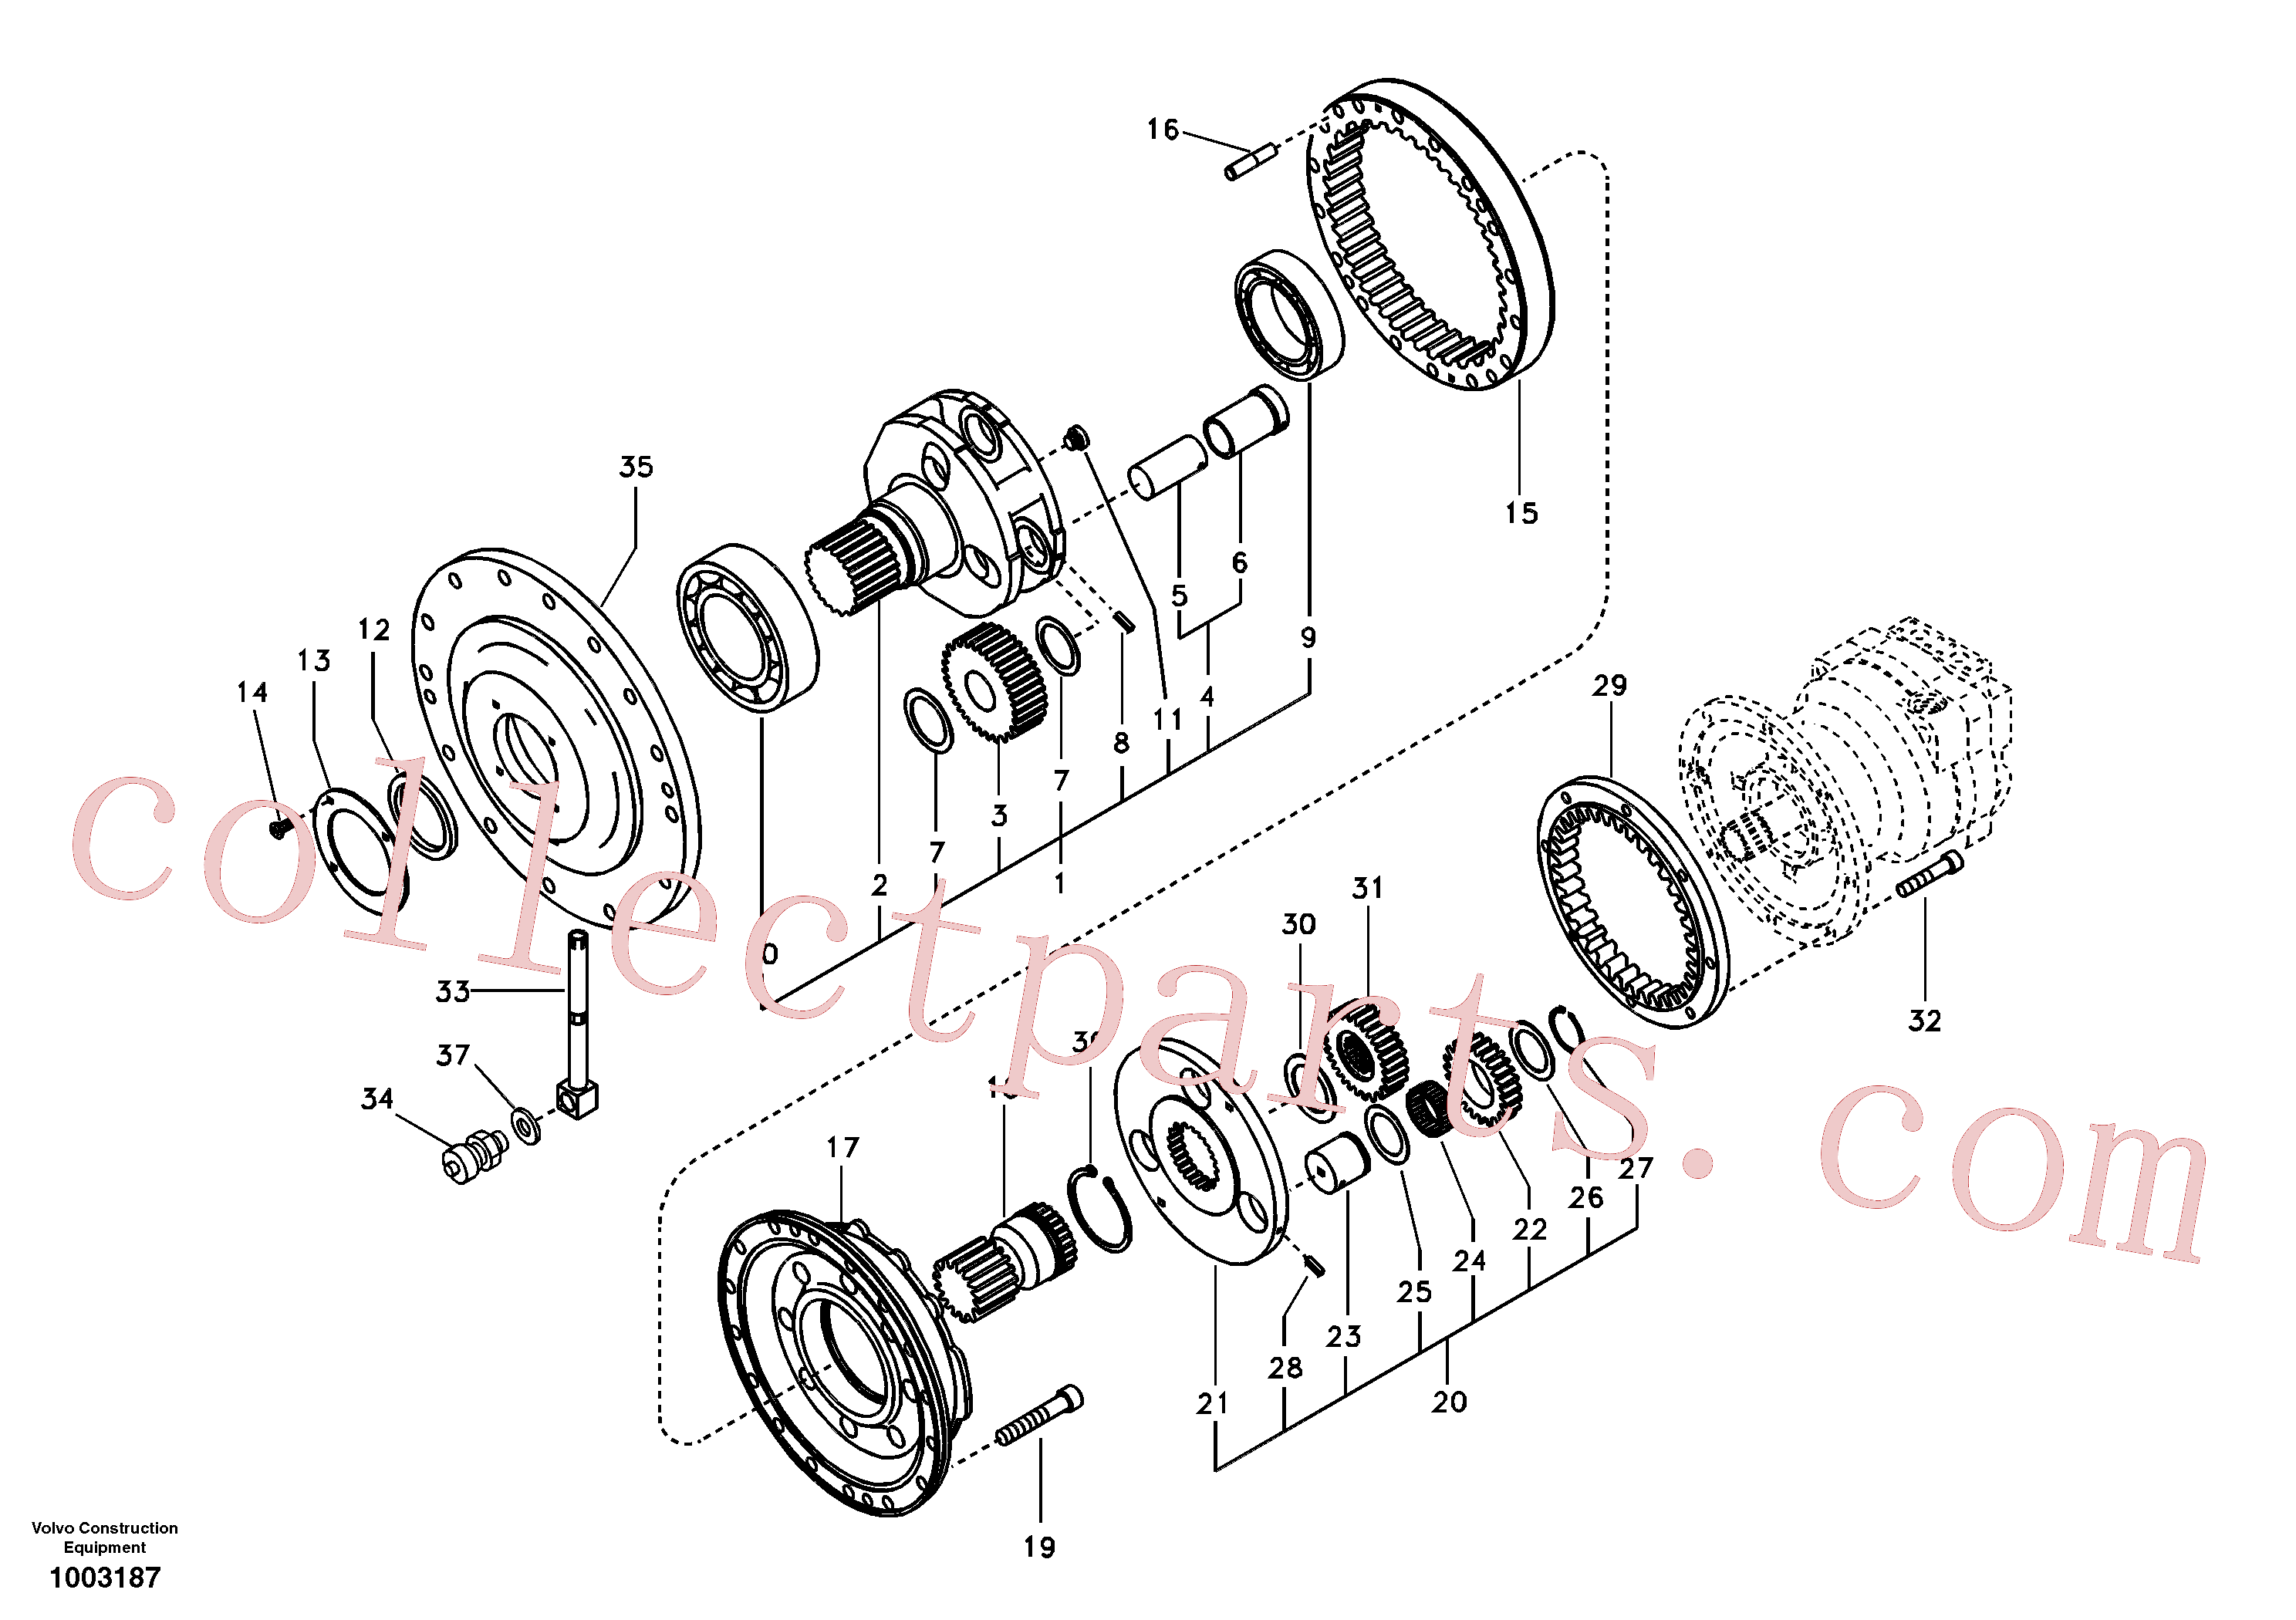 VOE7118-30620 for Volvo Swing gearbox(1003187 assembly)